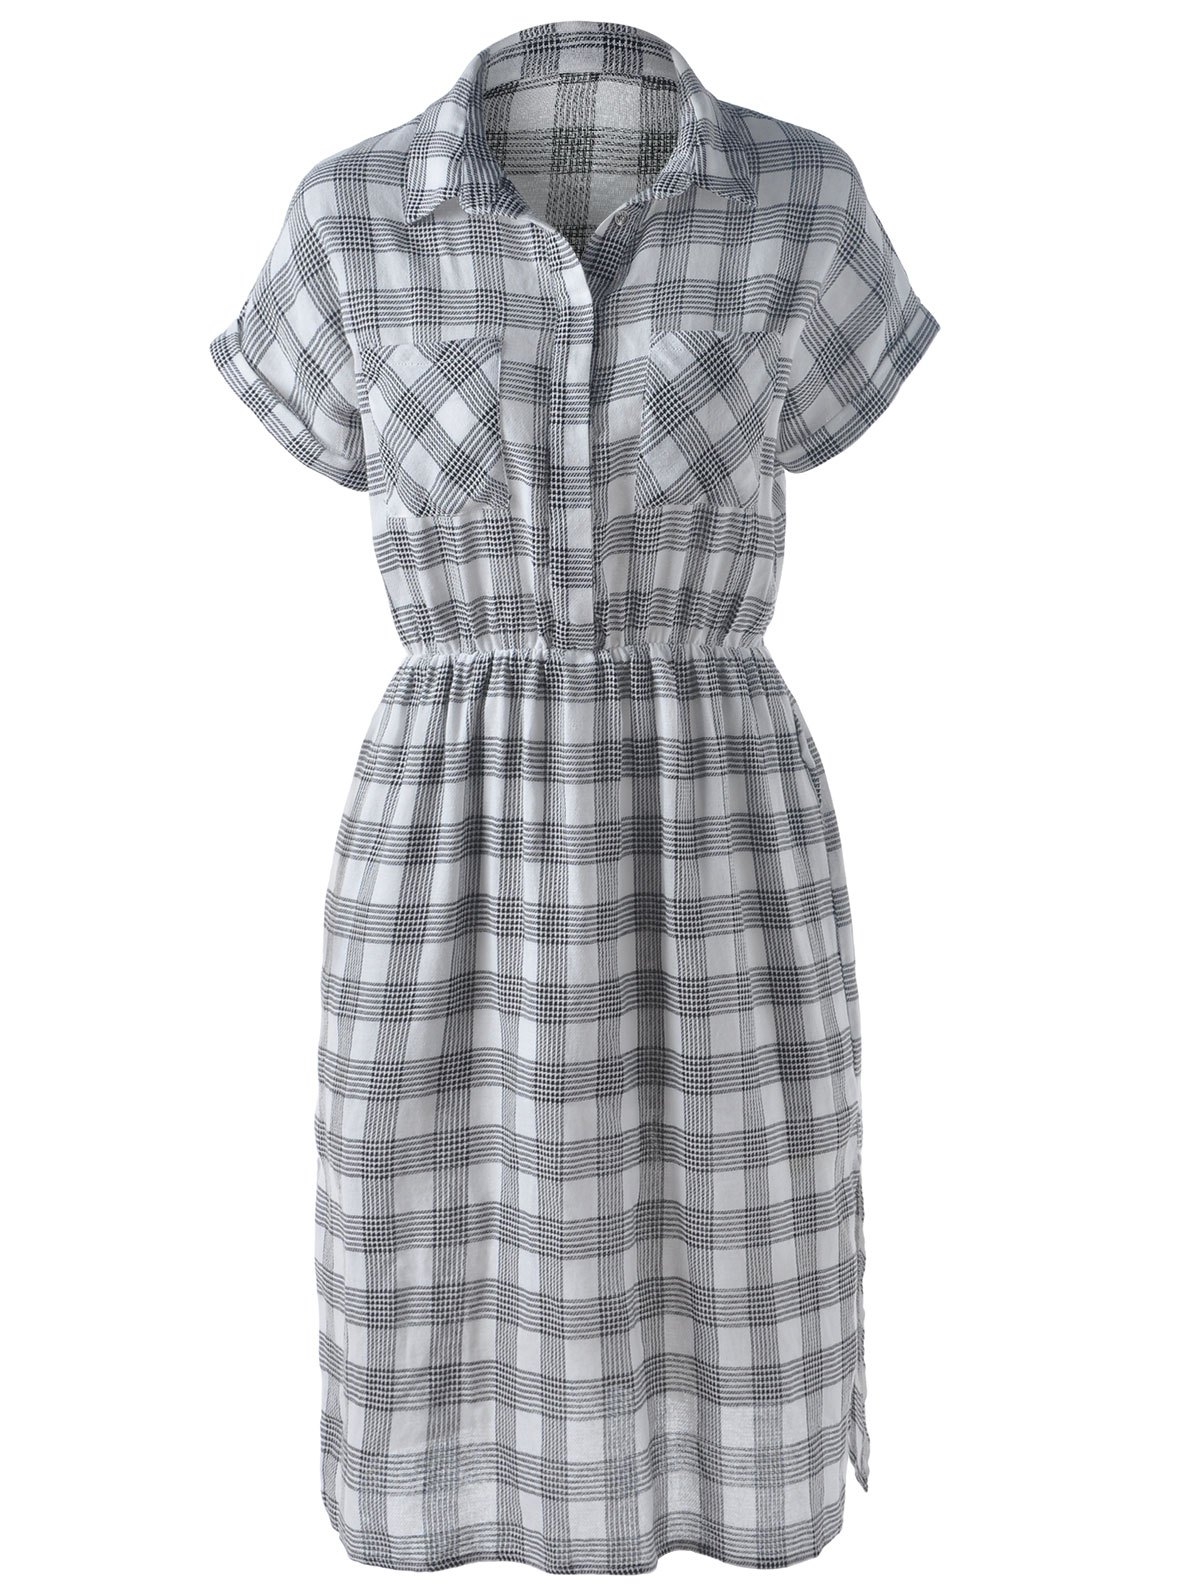 Stylish Women's Turn-Down Collar Short Sleeve Slit Plaid Dress - GRAY L